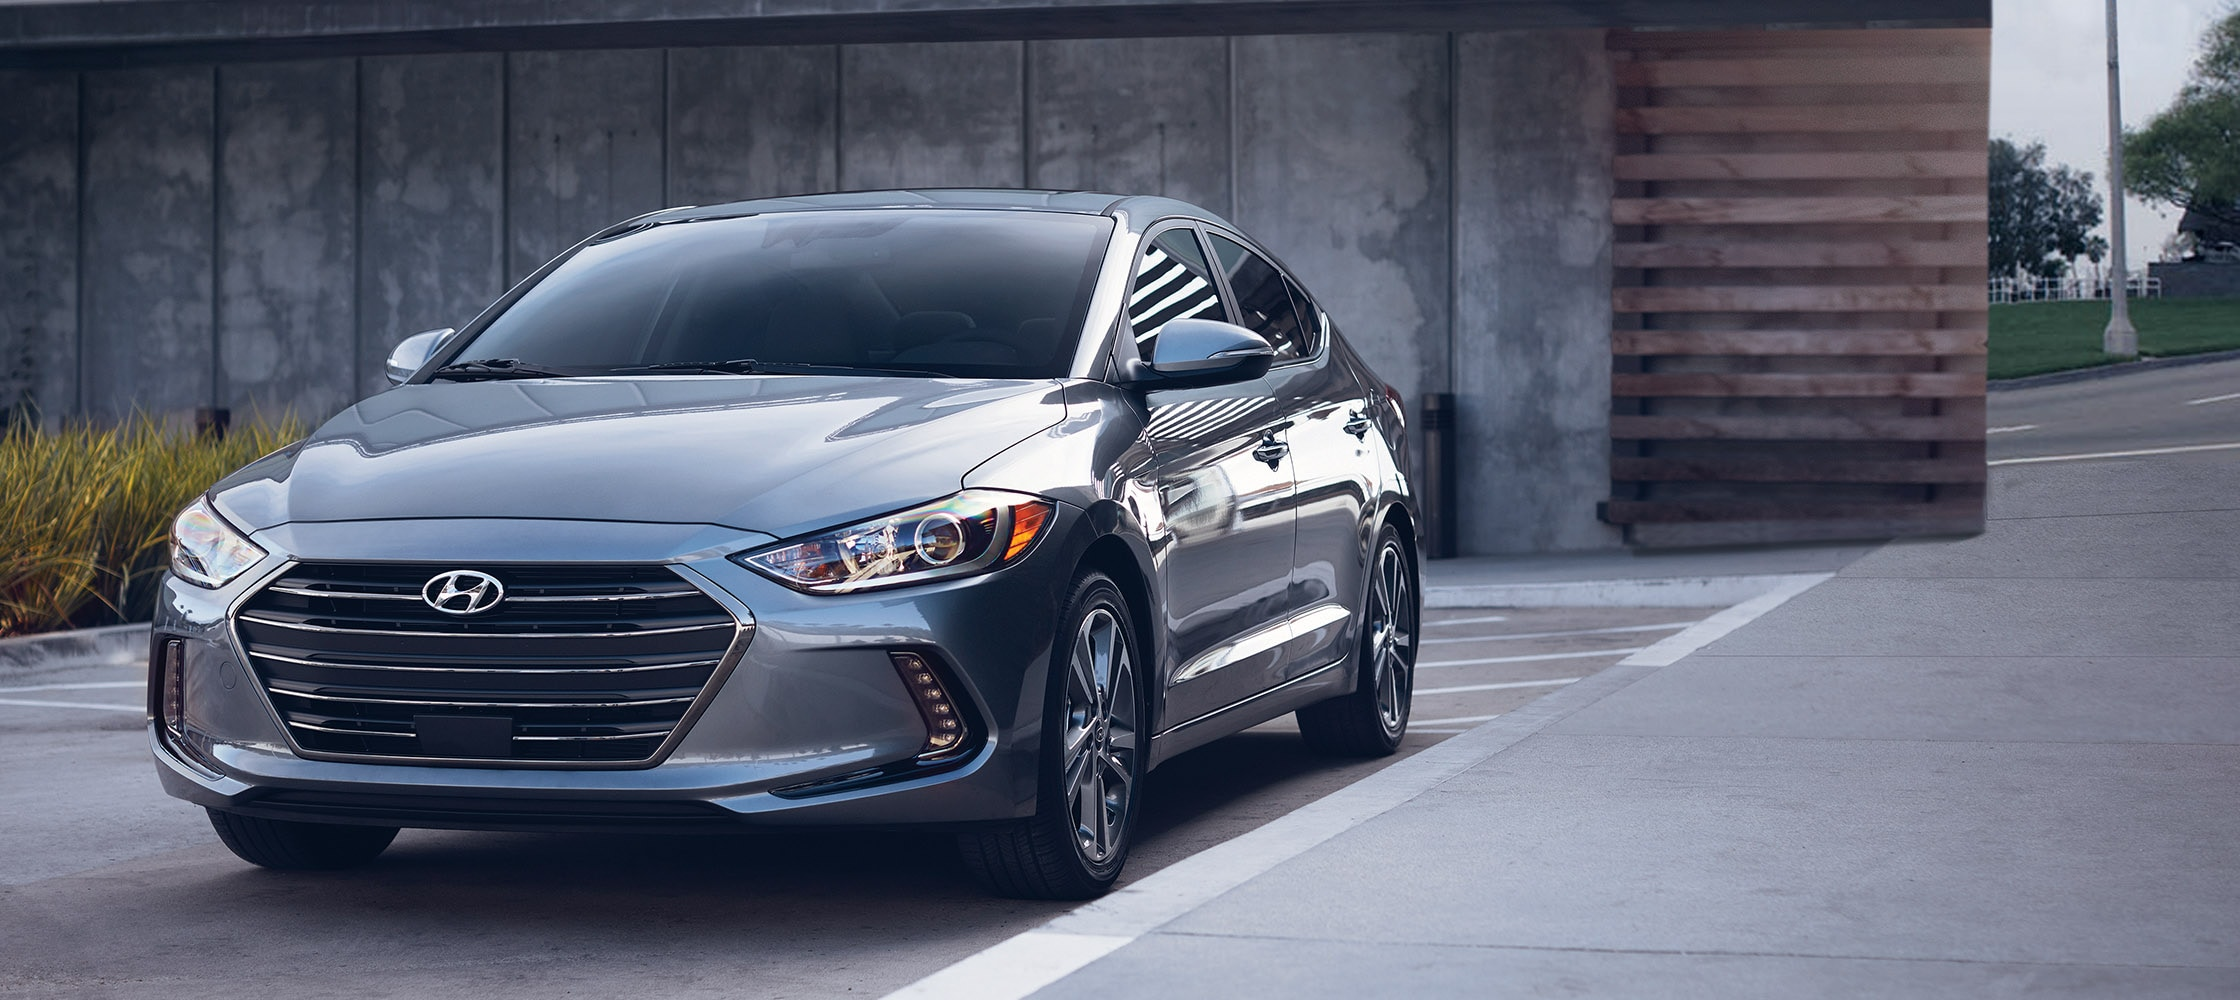 photo of grey Hyundai Elantra V3 2017 front grill, sleek headlights, and side door